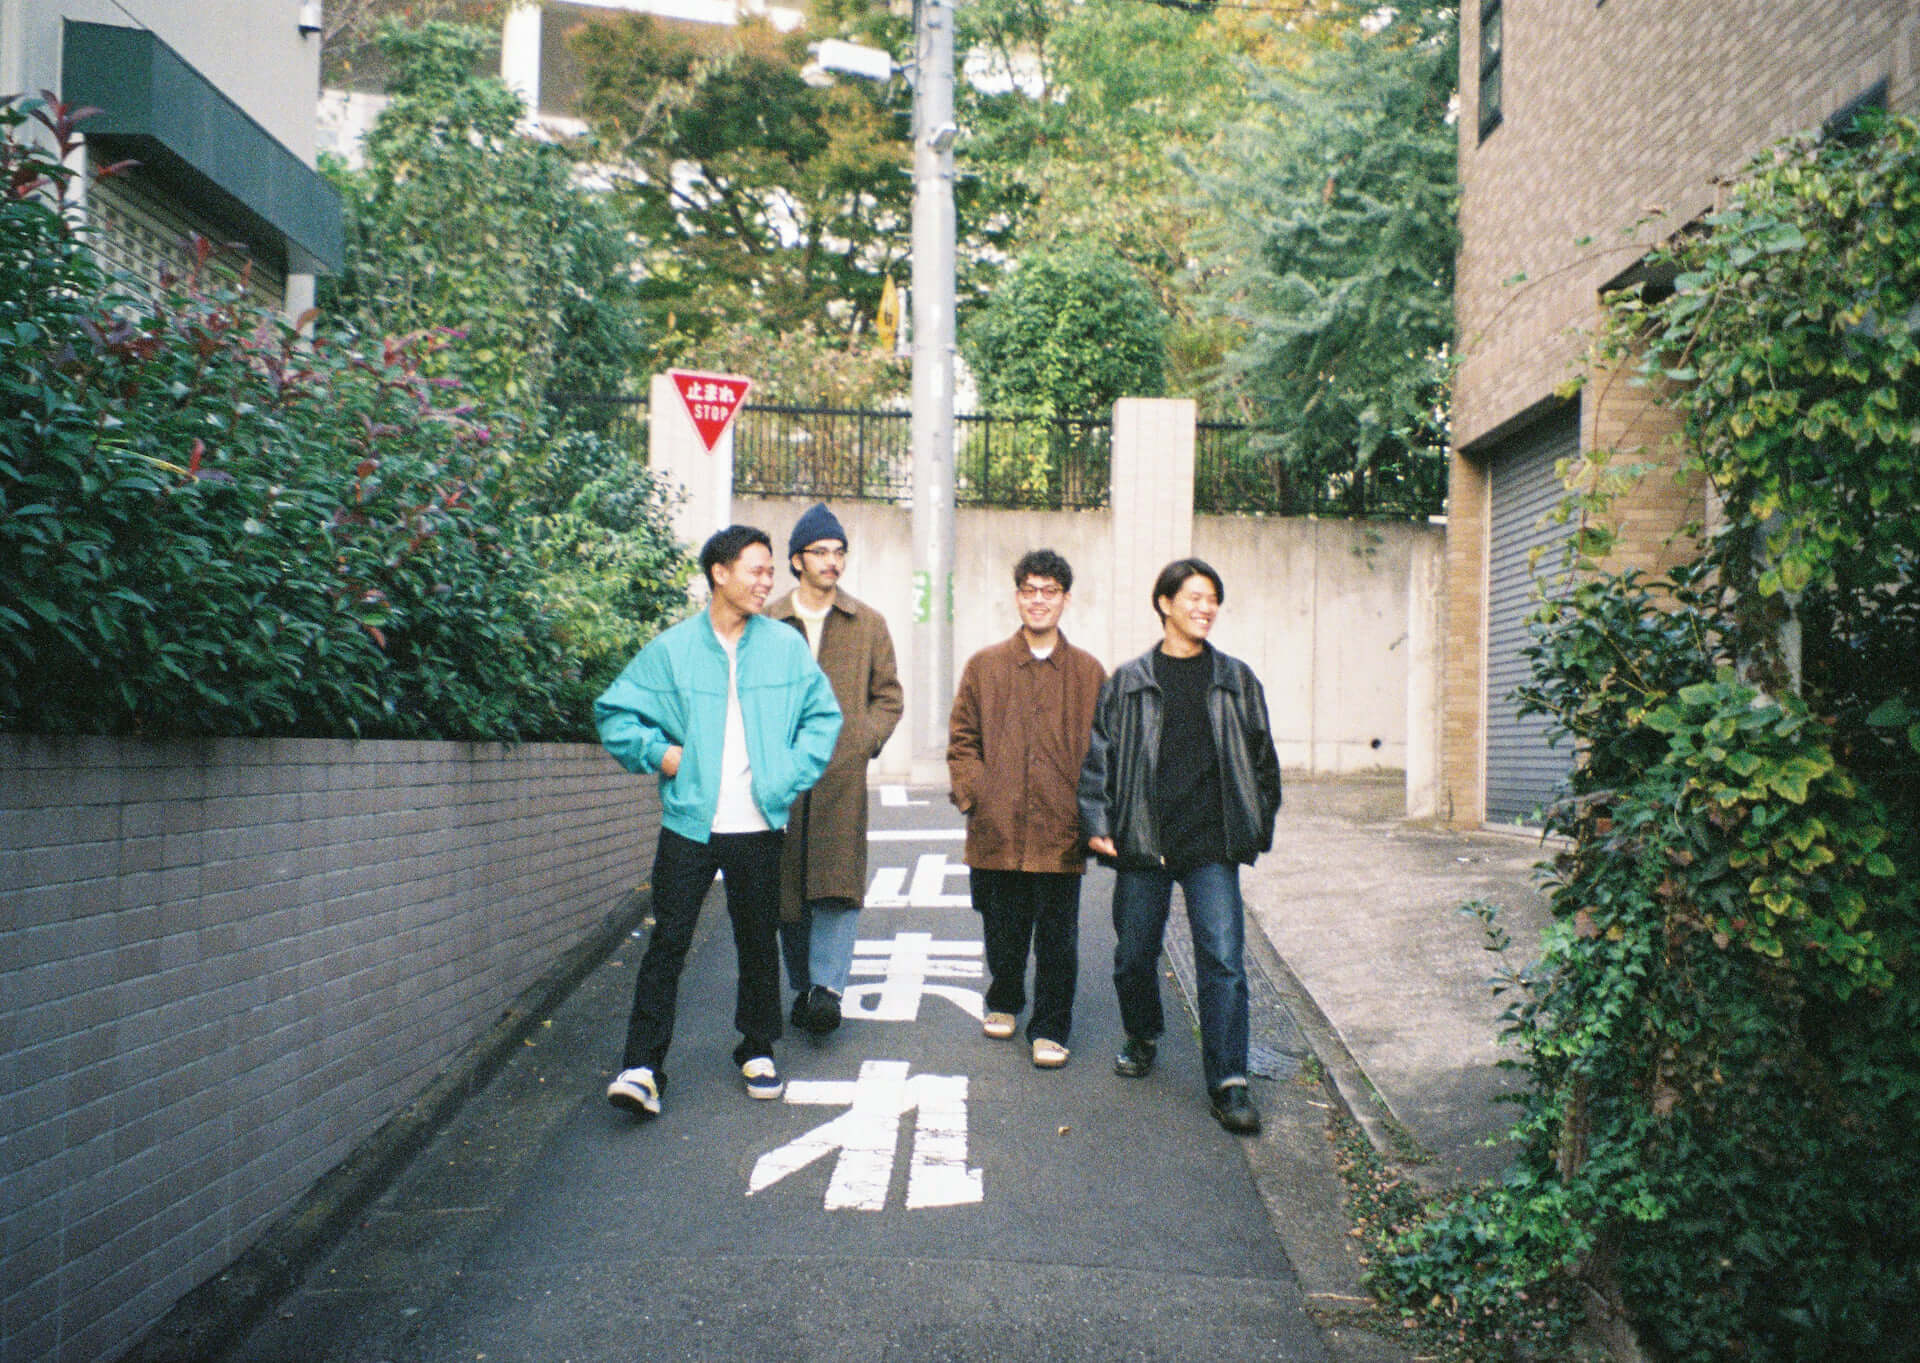 Yogee New Wavesが『to the MOON e.p.』に込めた想いと国境を超えた先にあるもの interview-yogee-53-1920x1363